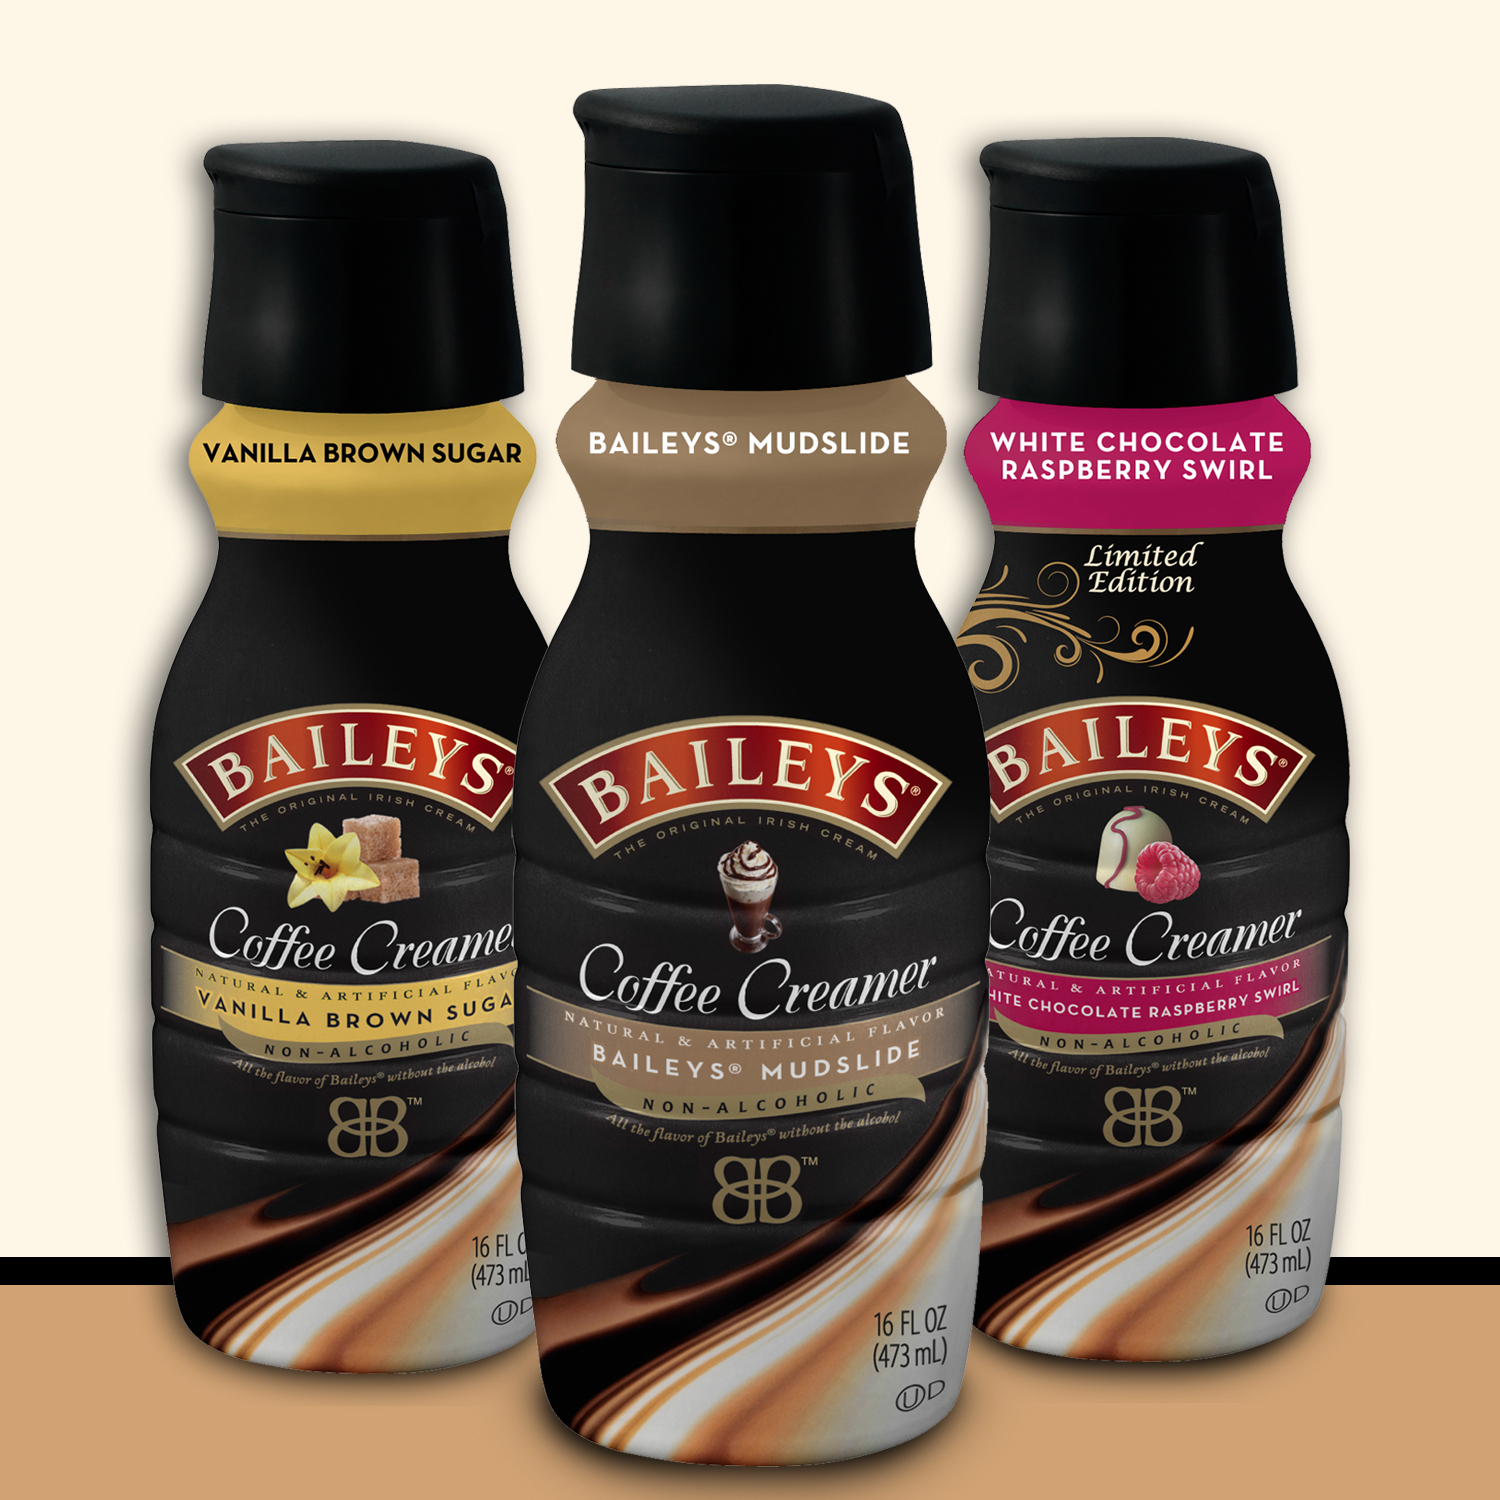 BAILEYS(R) Mudslide, Vanilla Brown Sugar, and Limited Edition White Chocolate Raspberry Swirl